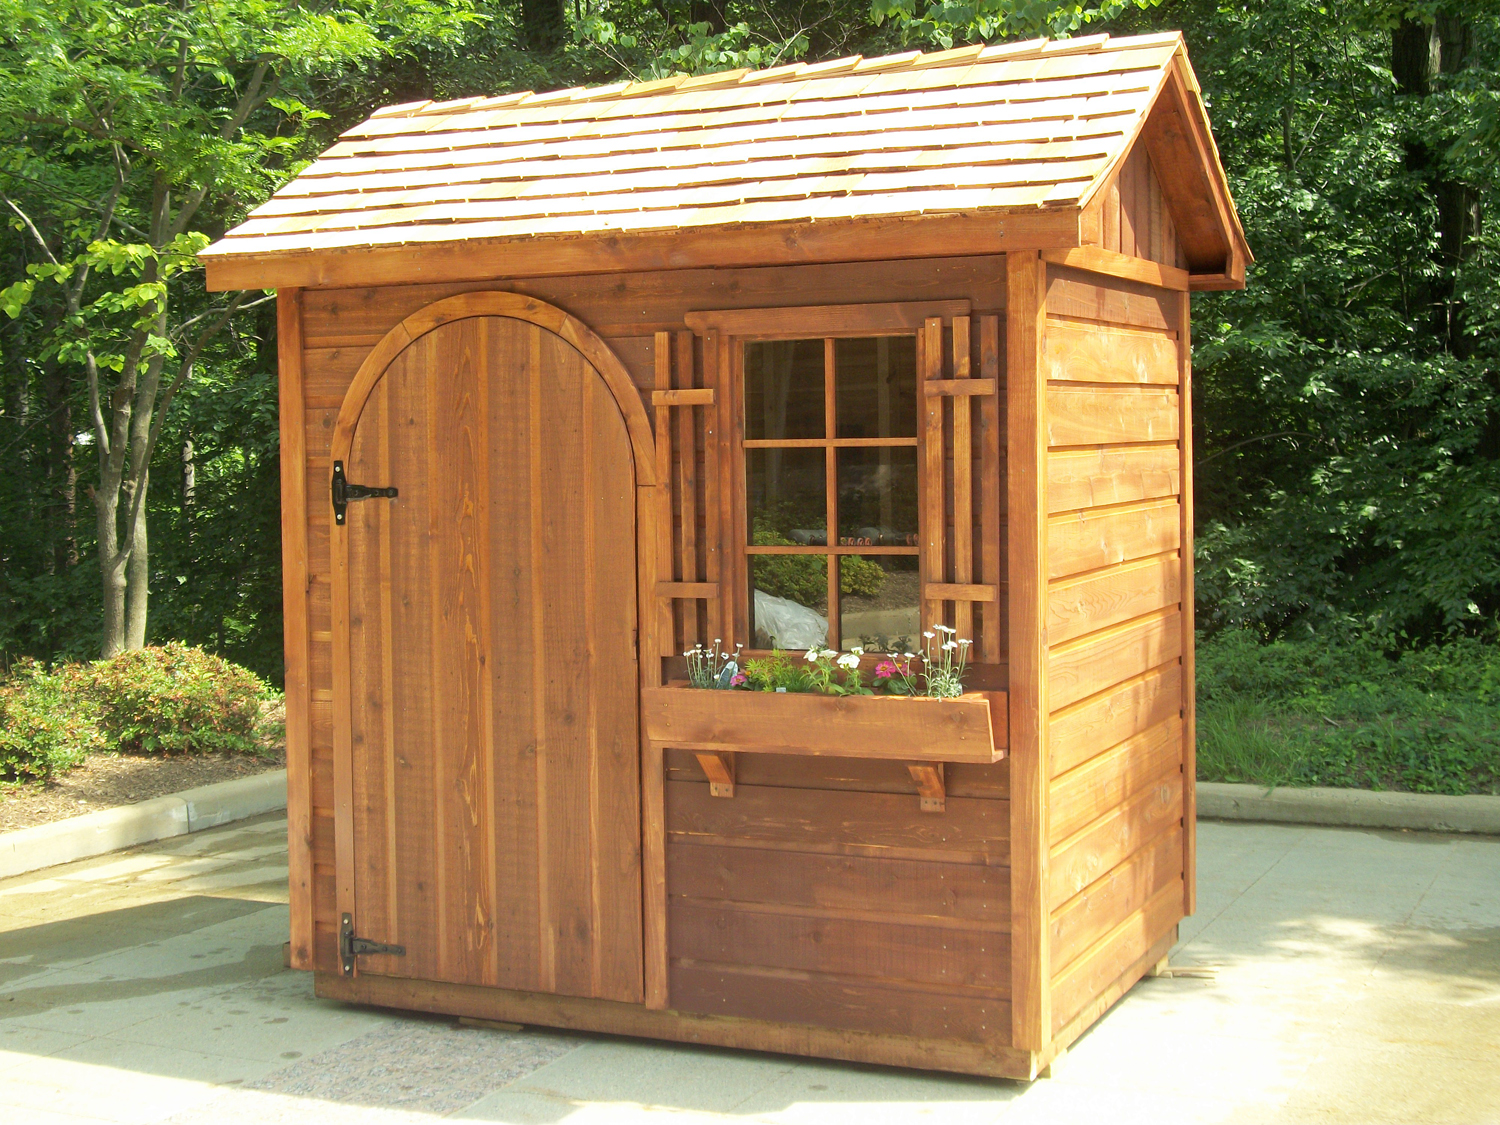 win this garden shed built entirely by women for just 1000 call habitat for humanity of northern virginia - Garden Sheds Northern Virginia